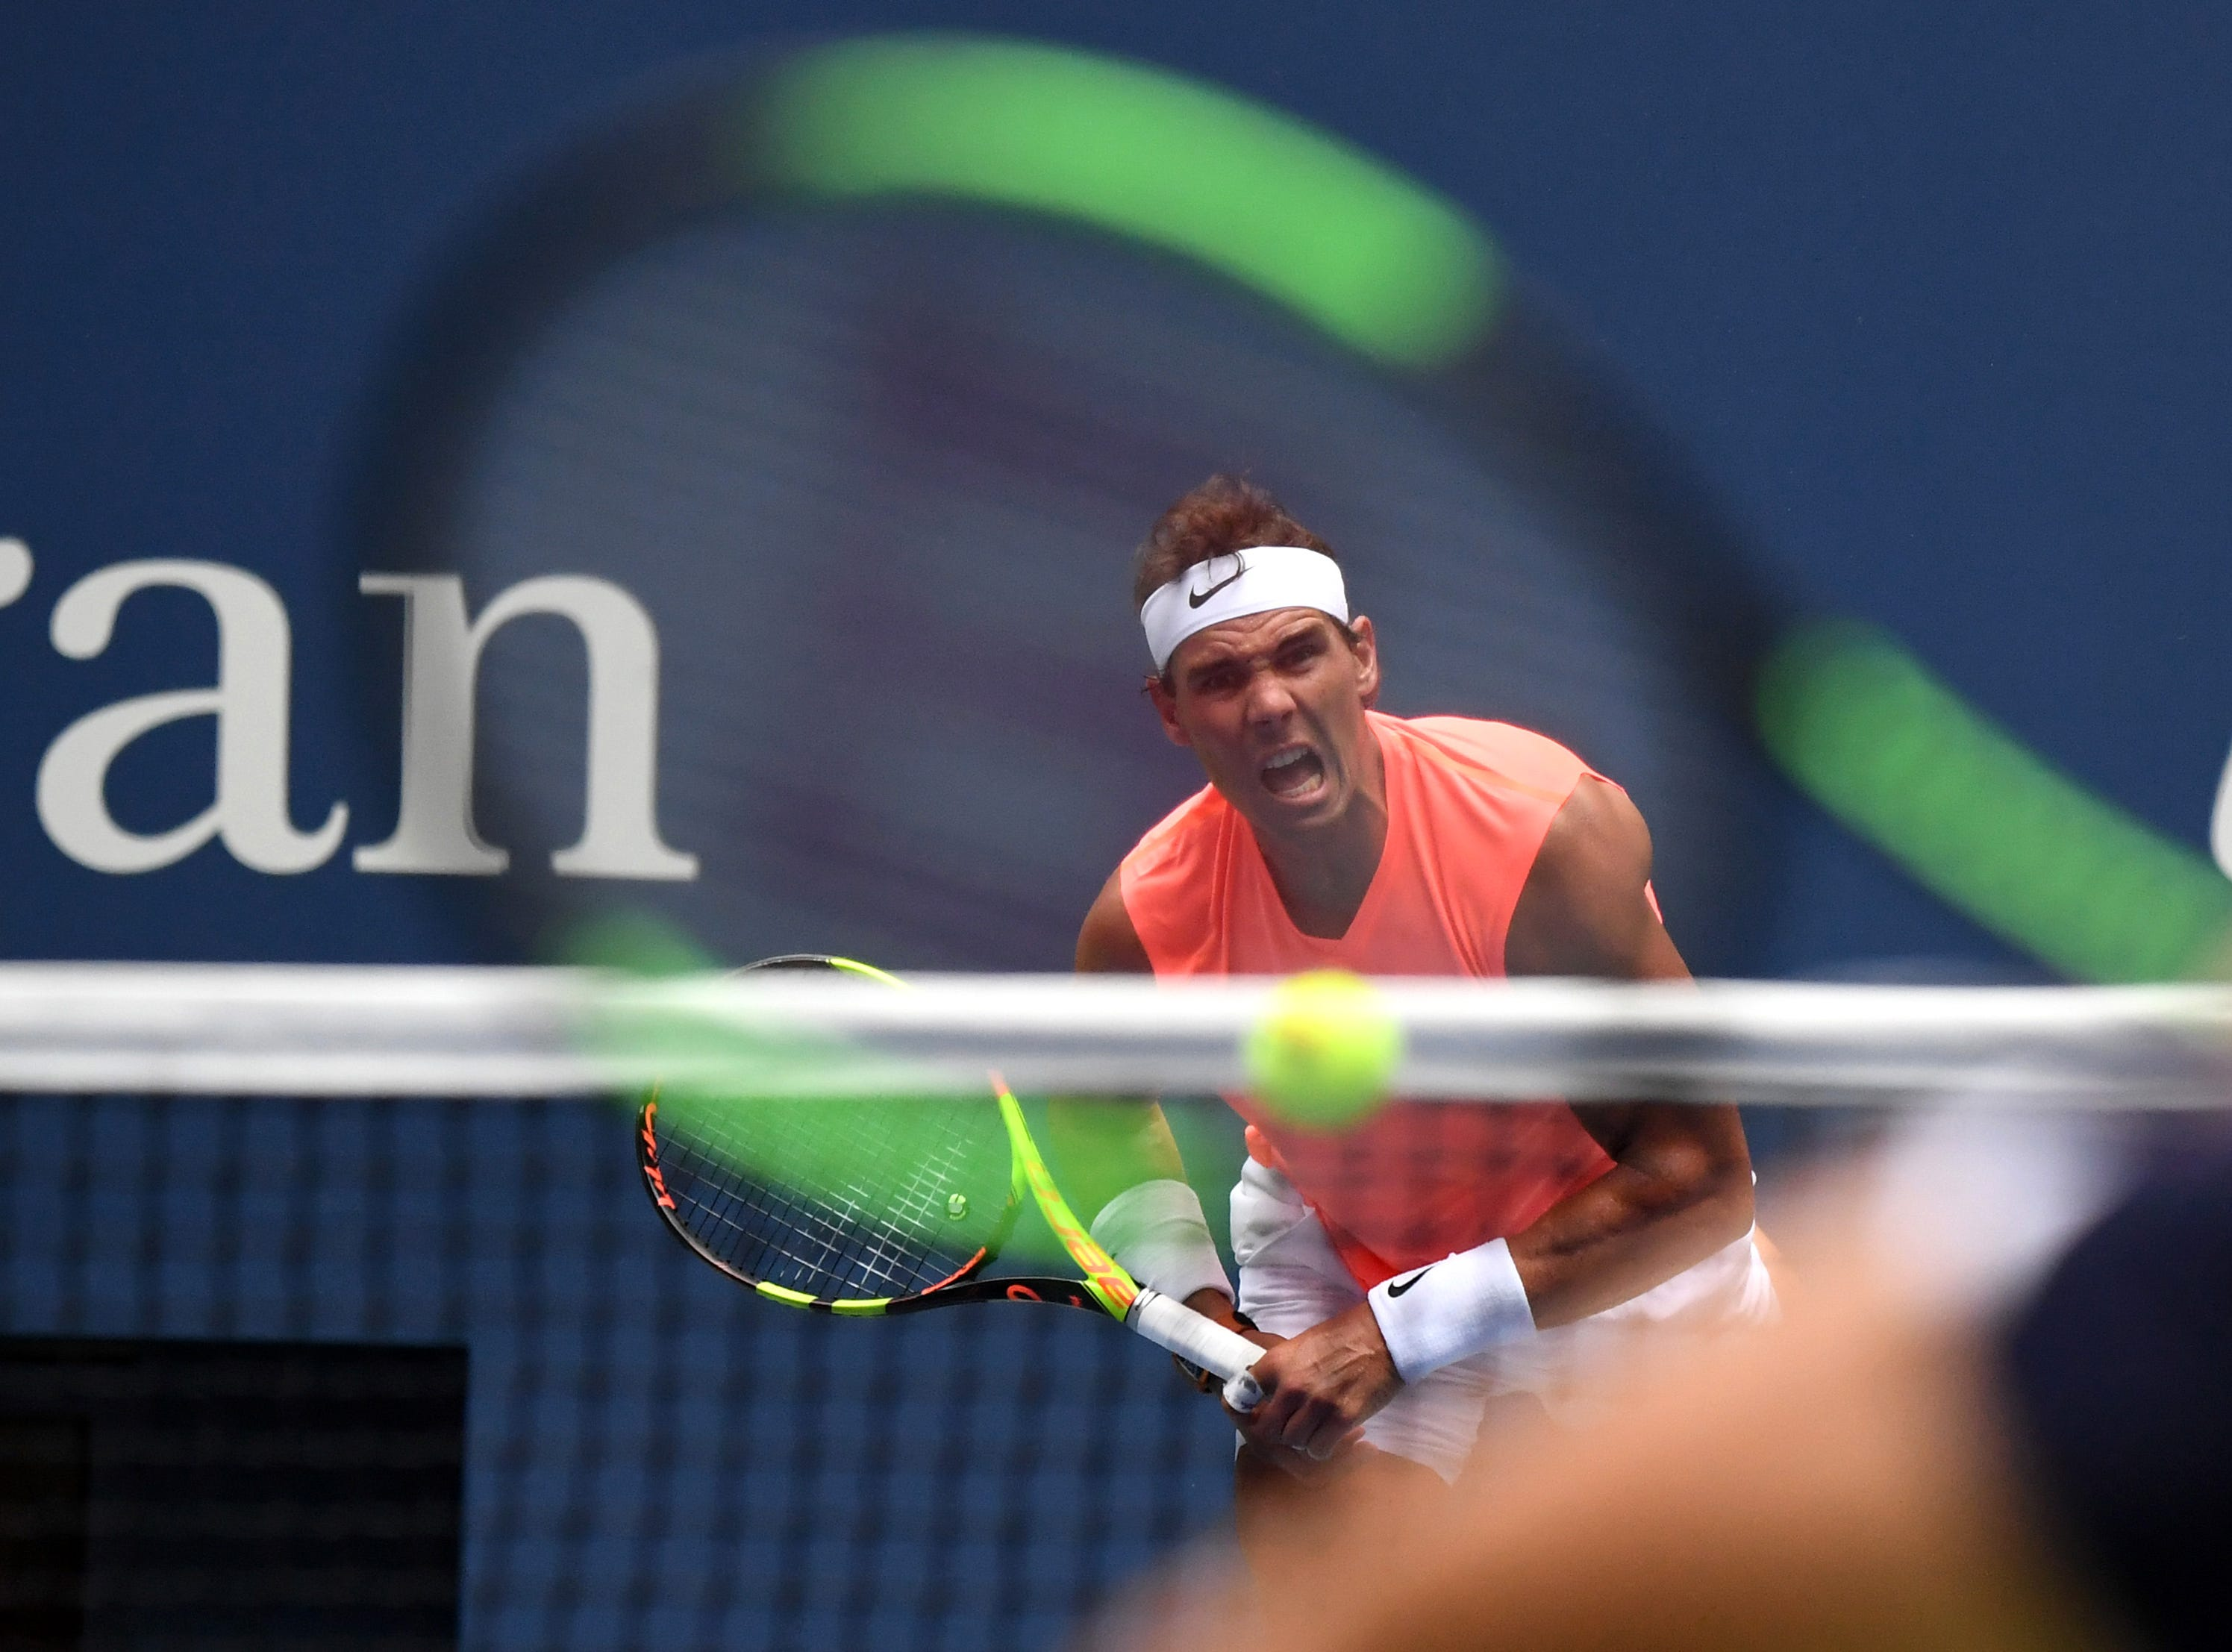 Aug 31, 2018; New York, NY, USA; Rafael Nadal of Spain serves to Karen Khachanov of Russia in a third round match on day five of the 2018 U.S. Open tennis tournament at USTA Billie Jean King National Tennis Center. Mandatory Credit: Danielle Parhizkaran-USA TODAY SPORTS